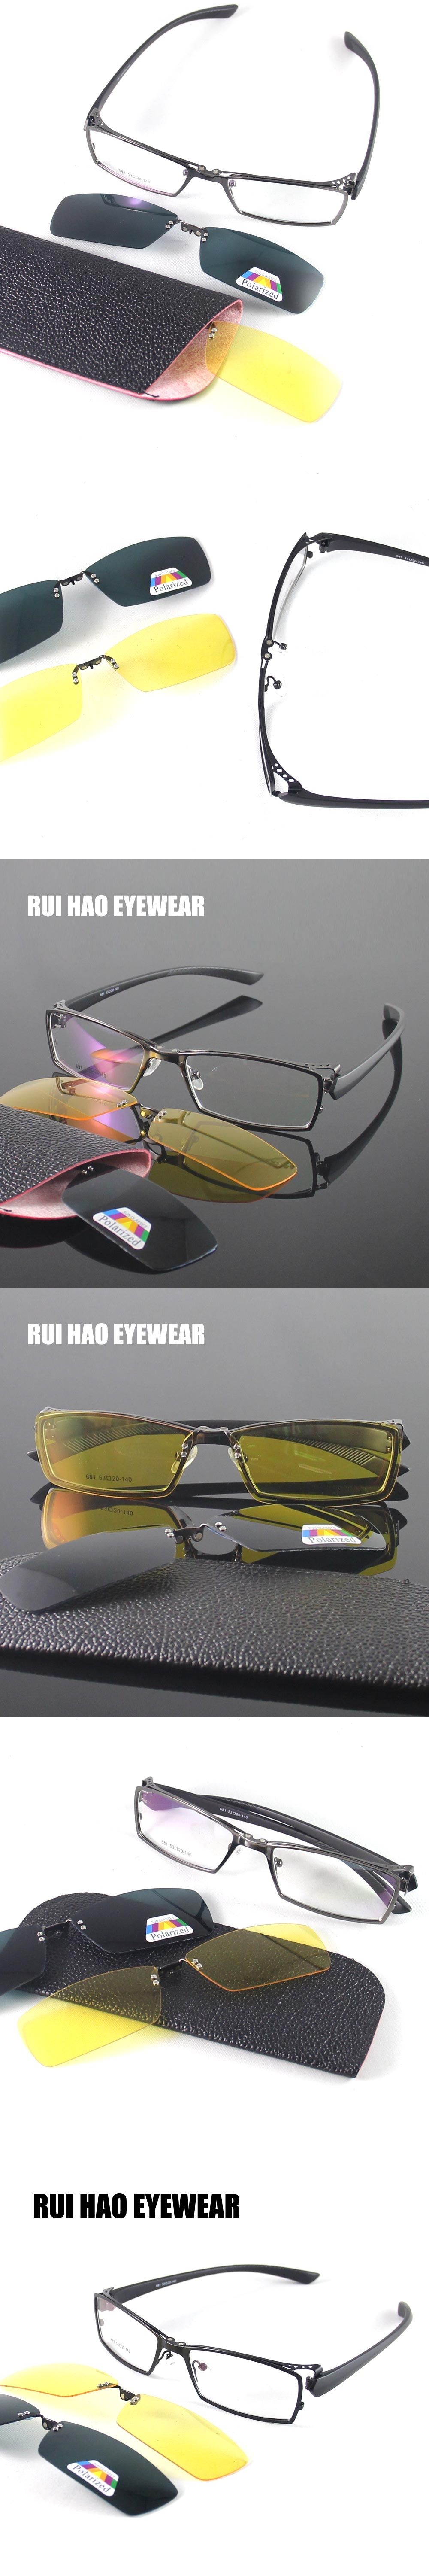 bfc48cd514 RUI HAO EYEWEAR Optical Eyeglasses Frame Men Women Full Rimless Design  Polarized sunglasses clip on Night